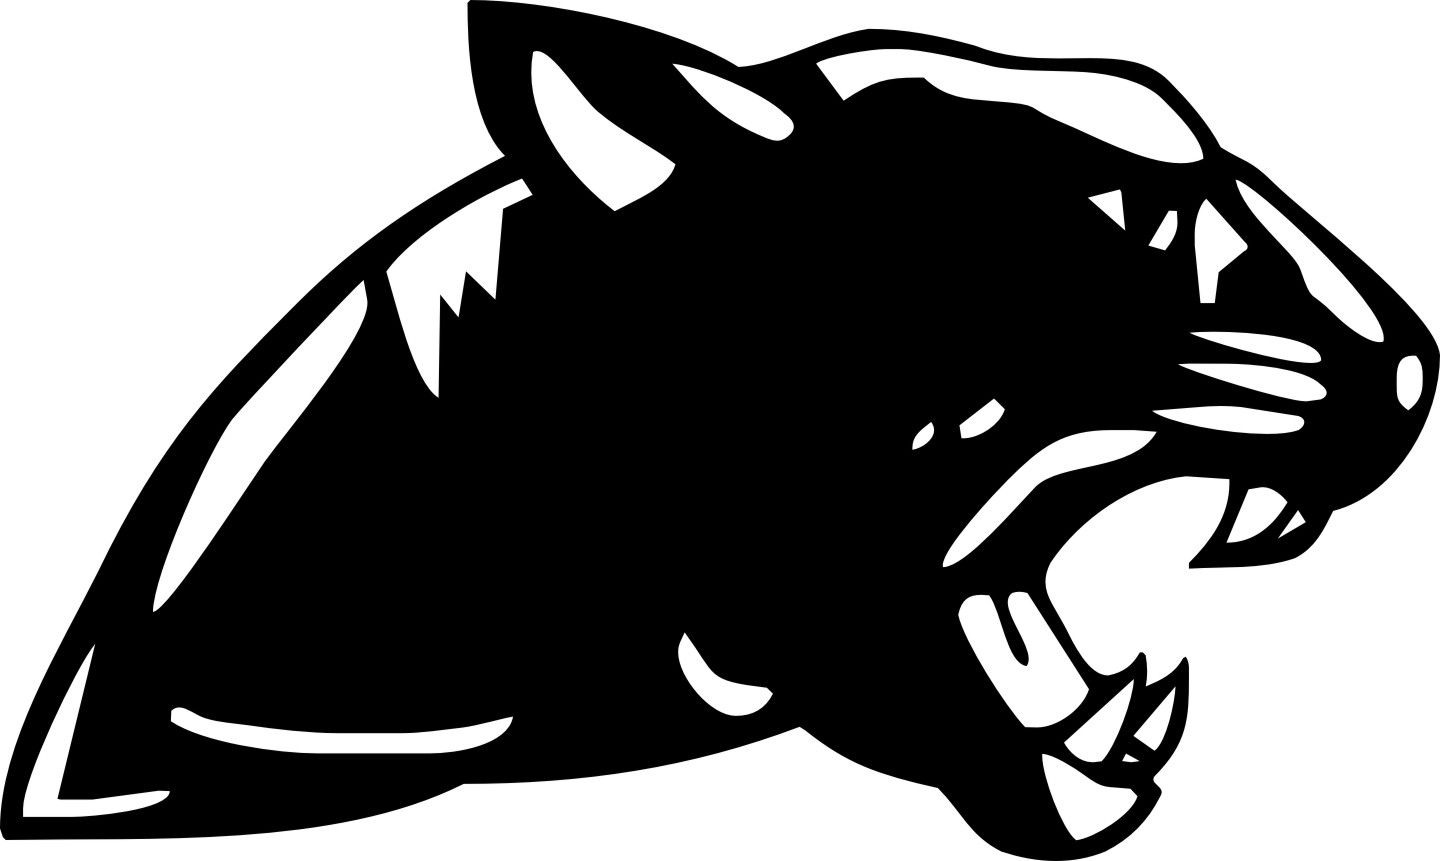 panther drawing outline - photo #21